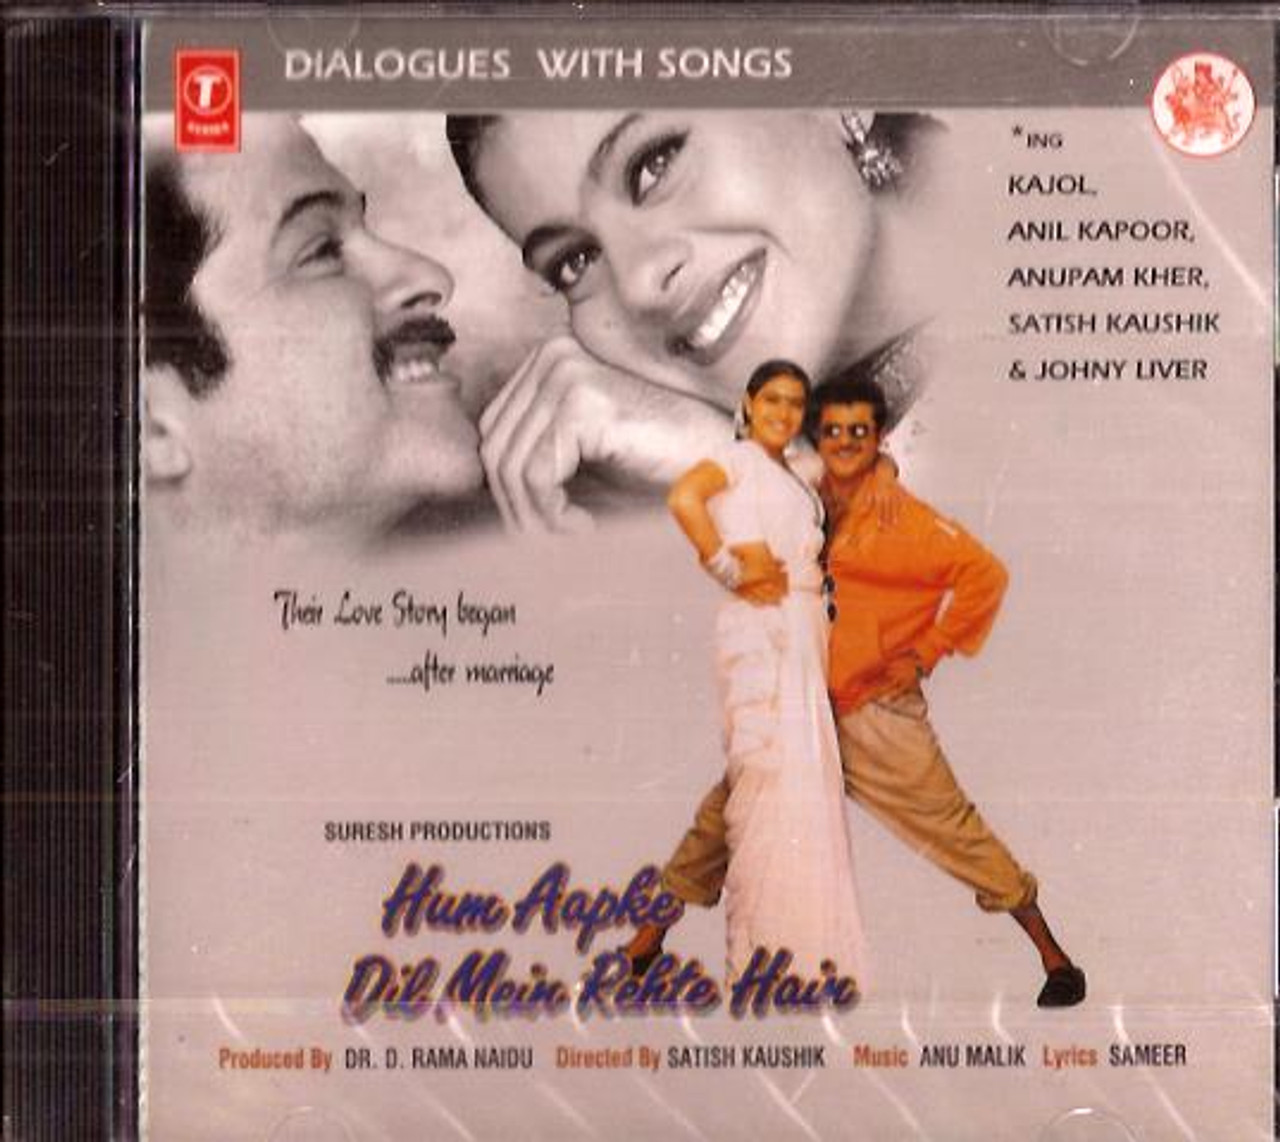 Hum Aapke Dil Mein Rehte Hain-Dialogues With Songs / CD 1999